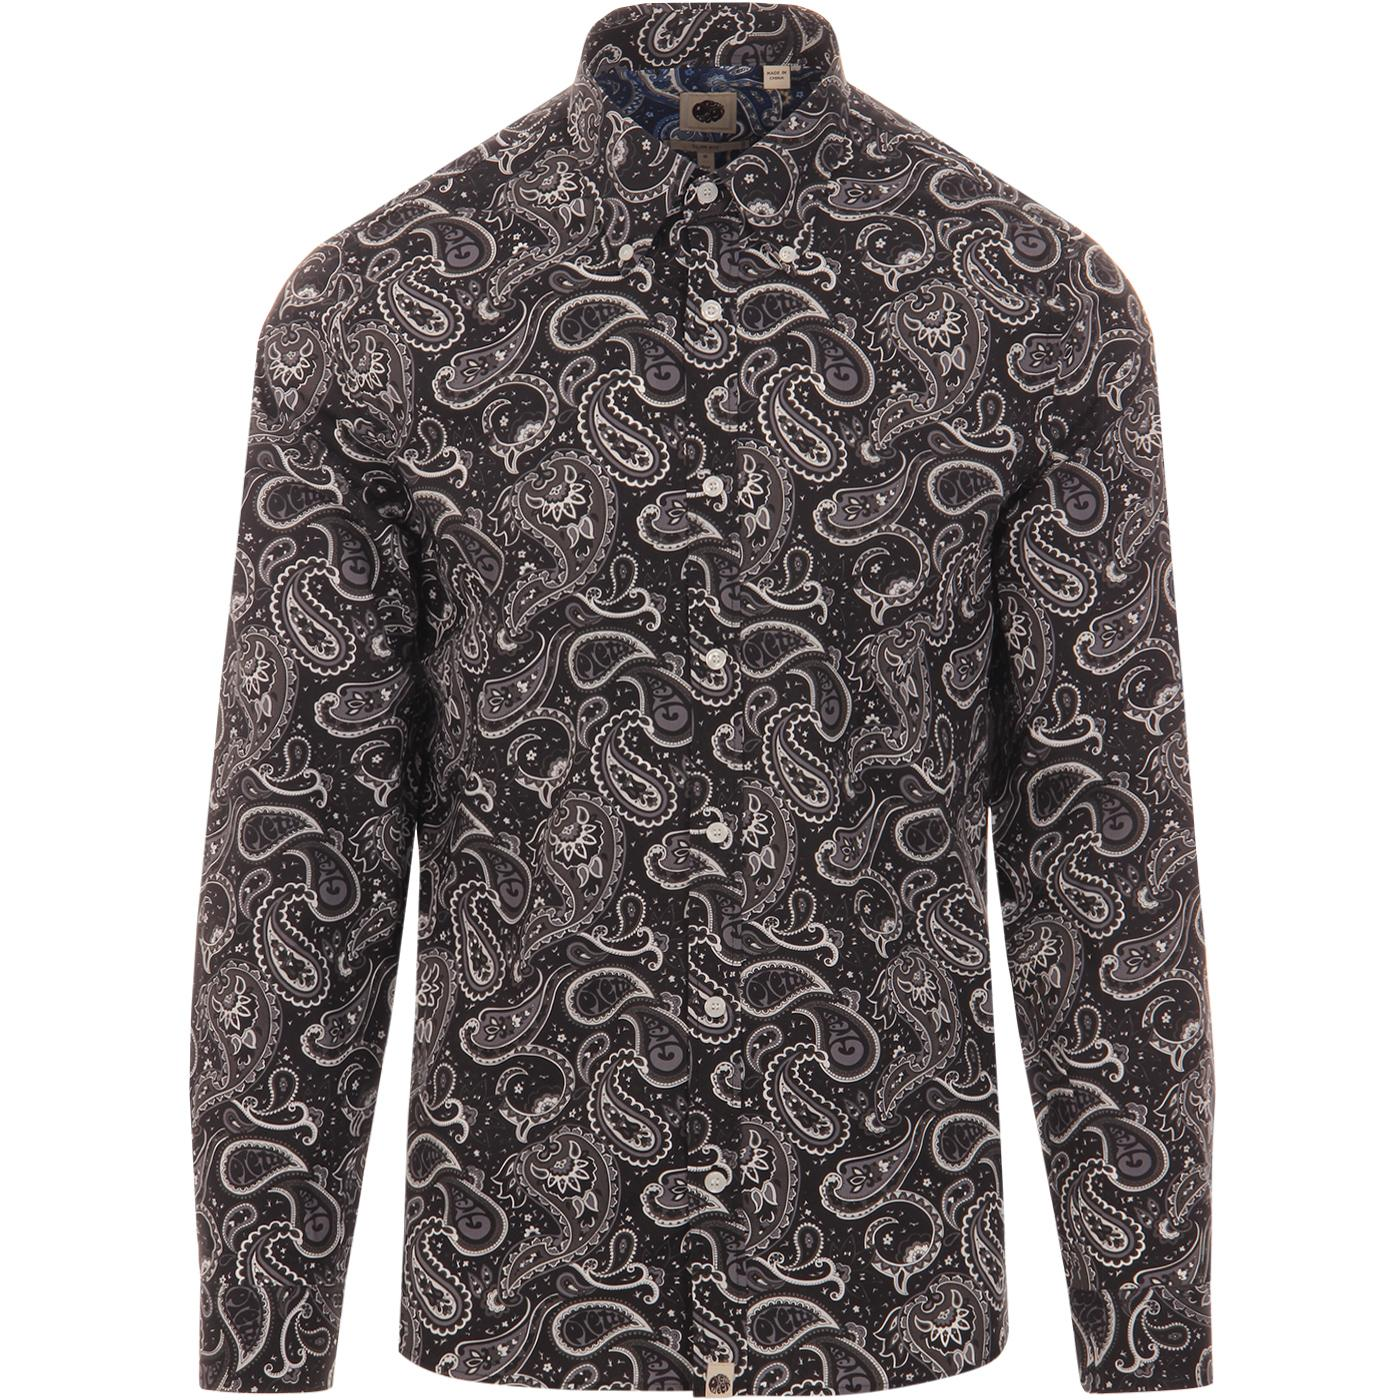 Westbrook PRETTY GREEN Mod Signature Paisley Shirt